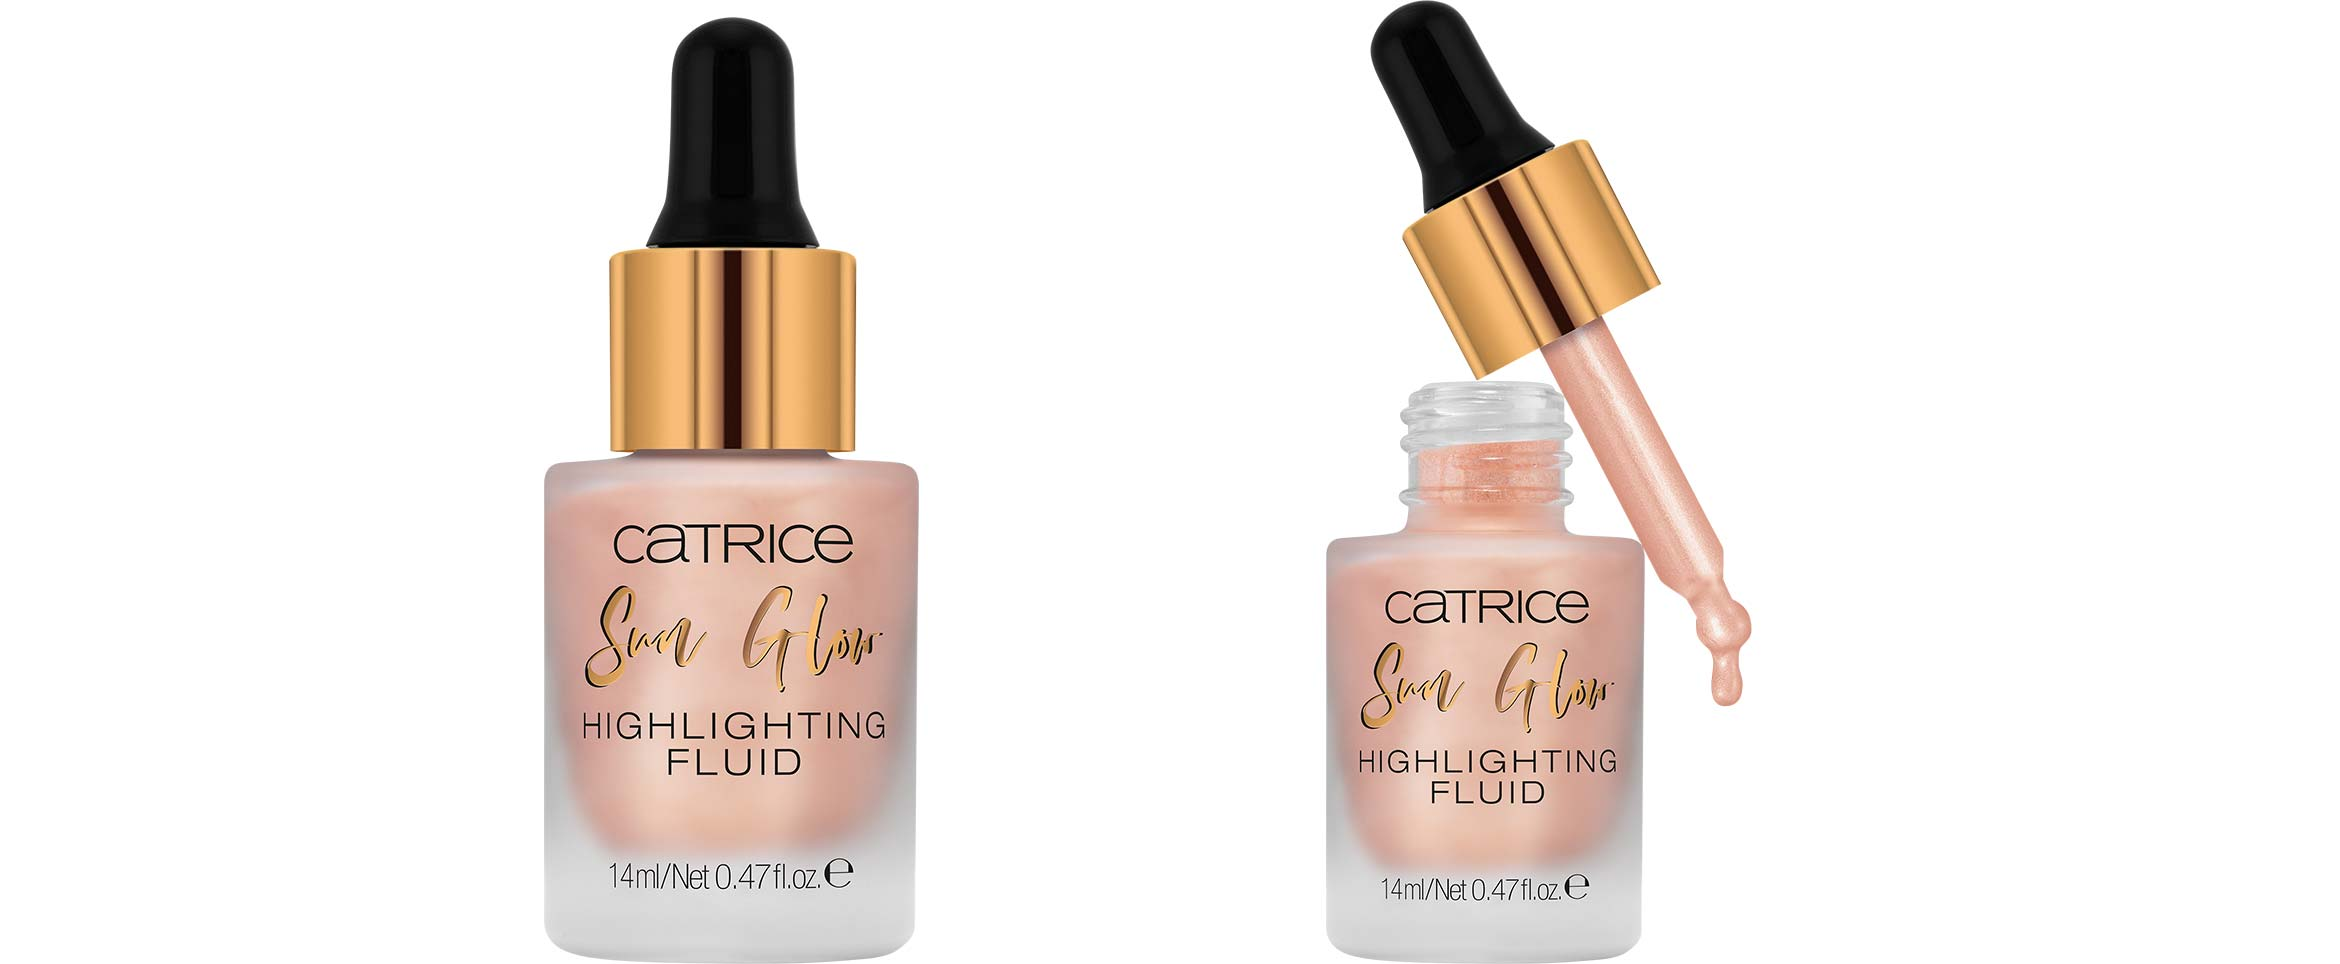 catrice-sun-glow-highlighter-fluid